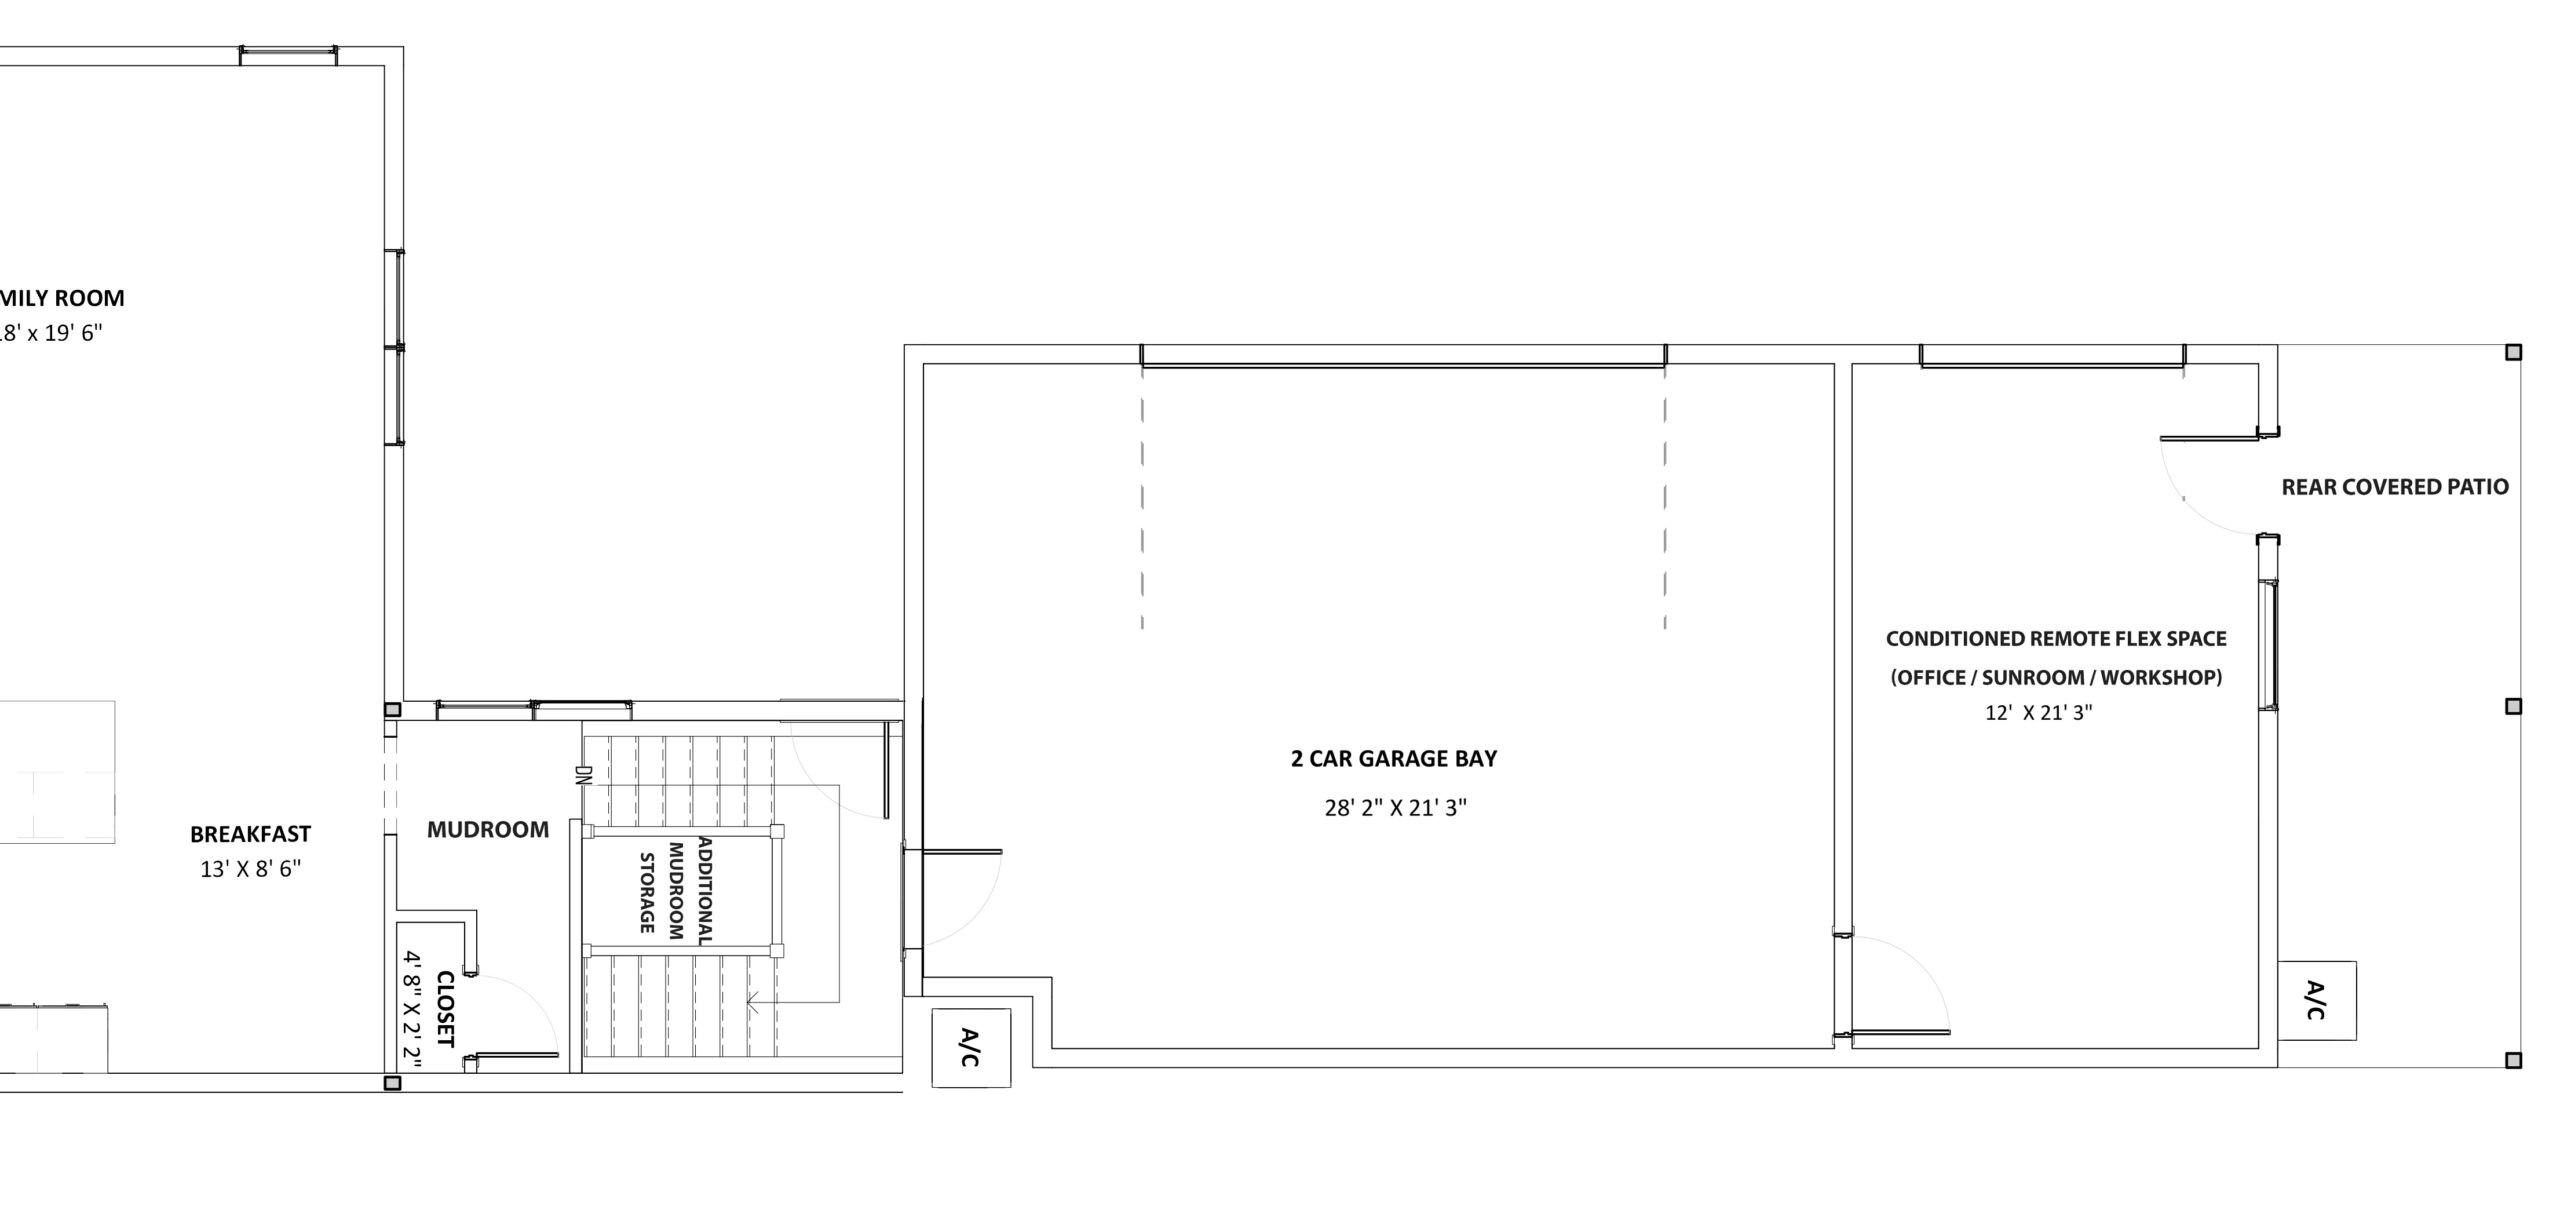 Floor Plan showing bonus space in new construction home accessed through the garage